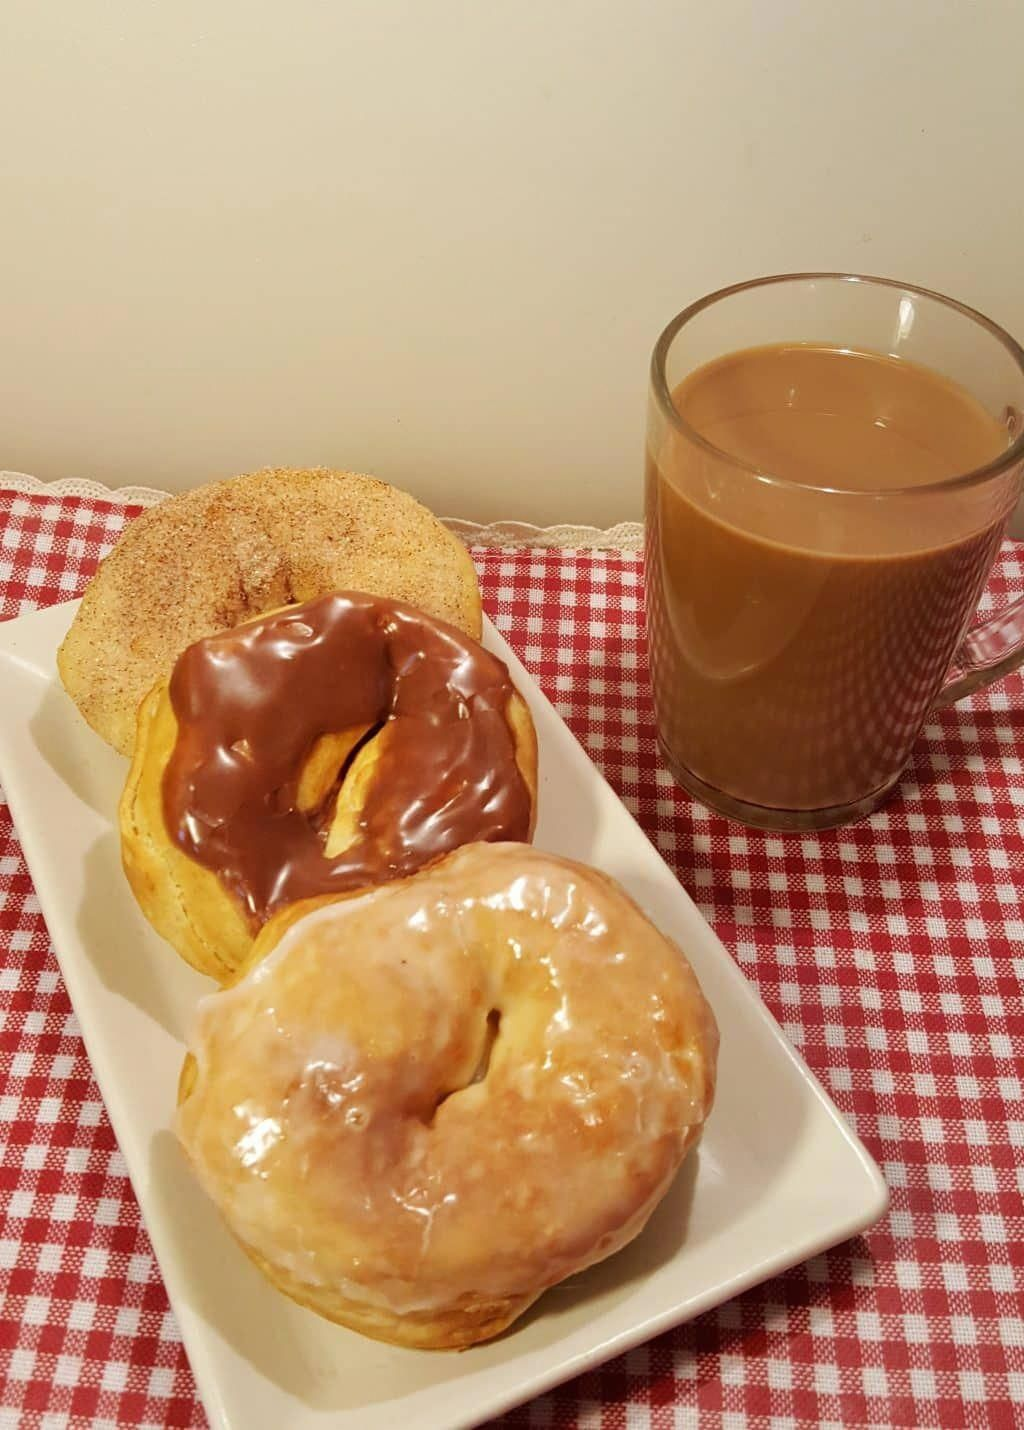 Got a craving for Donuts, but don't want to leave the house? Try these Quick Air Fryer Doughnuts and enjoy them with your morning coffee.